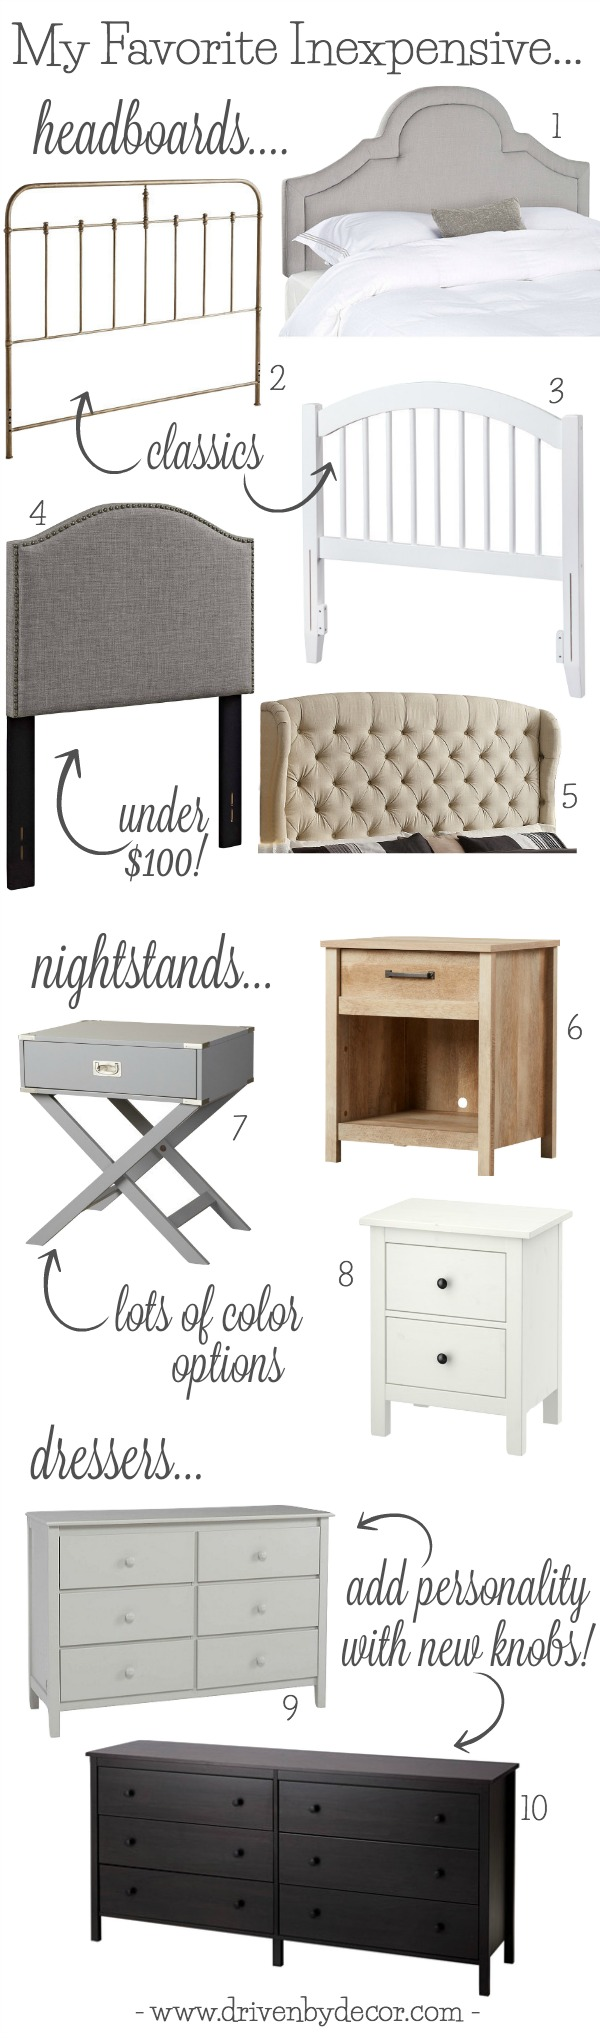 my favorite inexpensive bedroom furniture pieces from headboards to nightstands to dressers